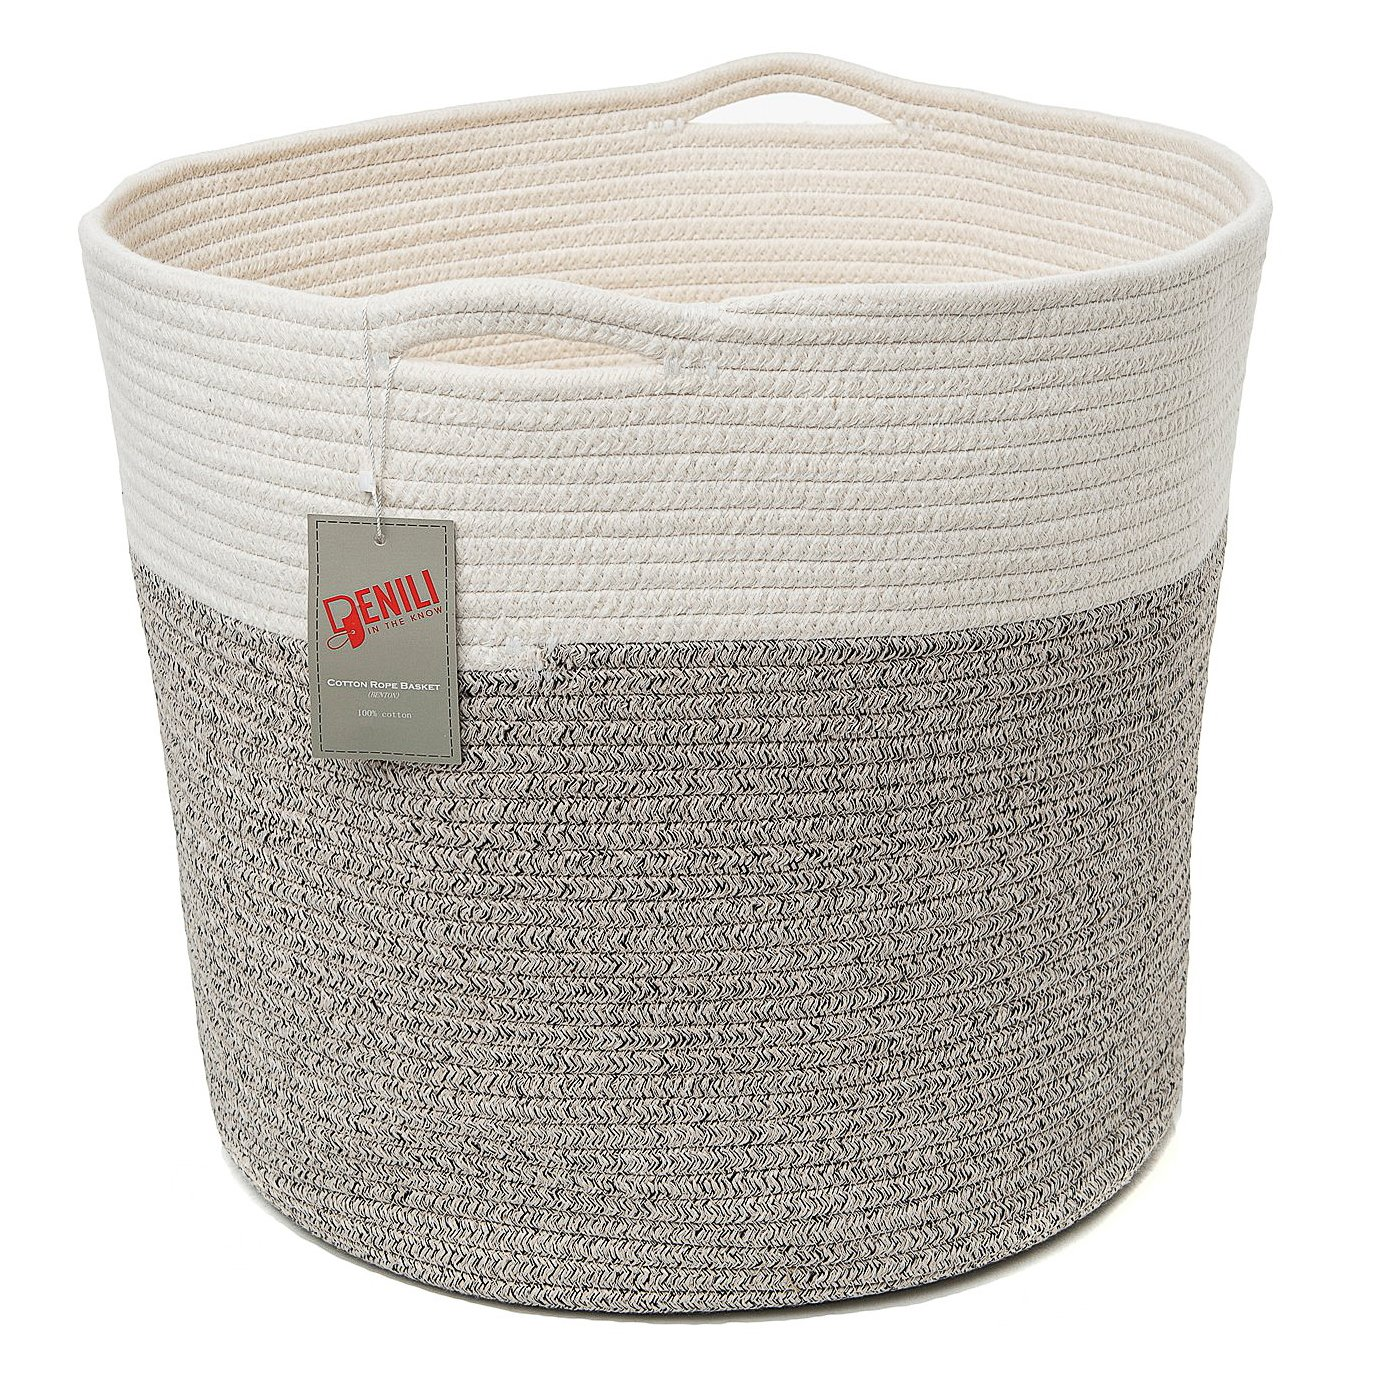 """Storage Basket   17"""" x 15"""" for Laundry, Gift, Picnic, Nursery, Kid's Toys, Kitchen, Bathroom   Large & Strong   100% Cotton with Handles   Bonus 5 Free Labels to Identify Contents   by PENILI"""